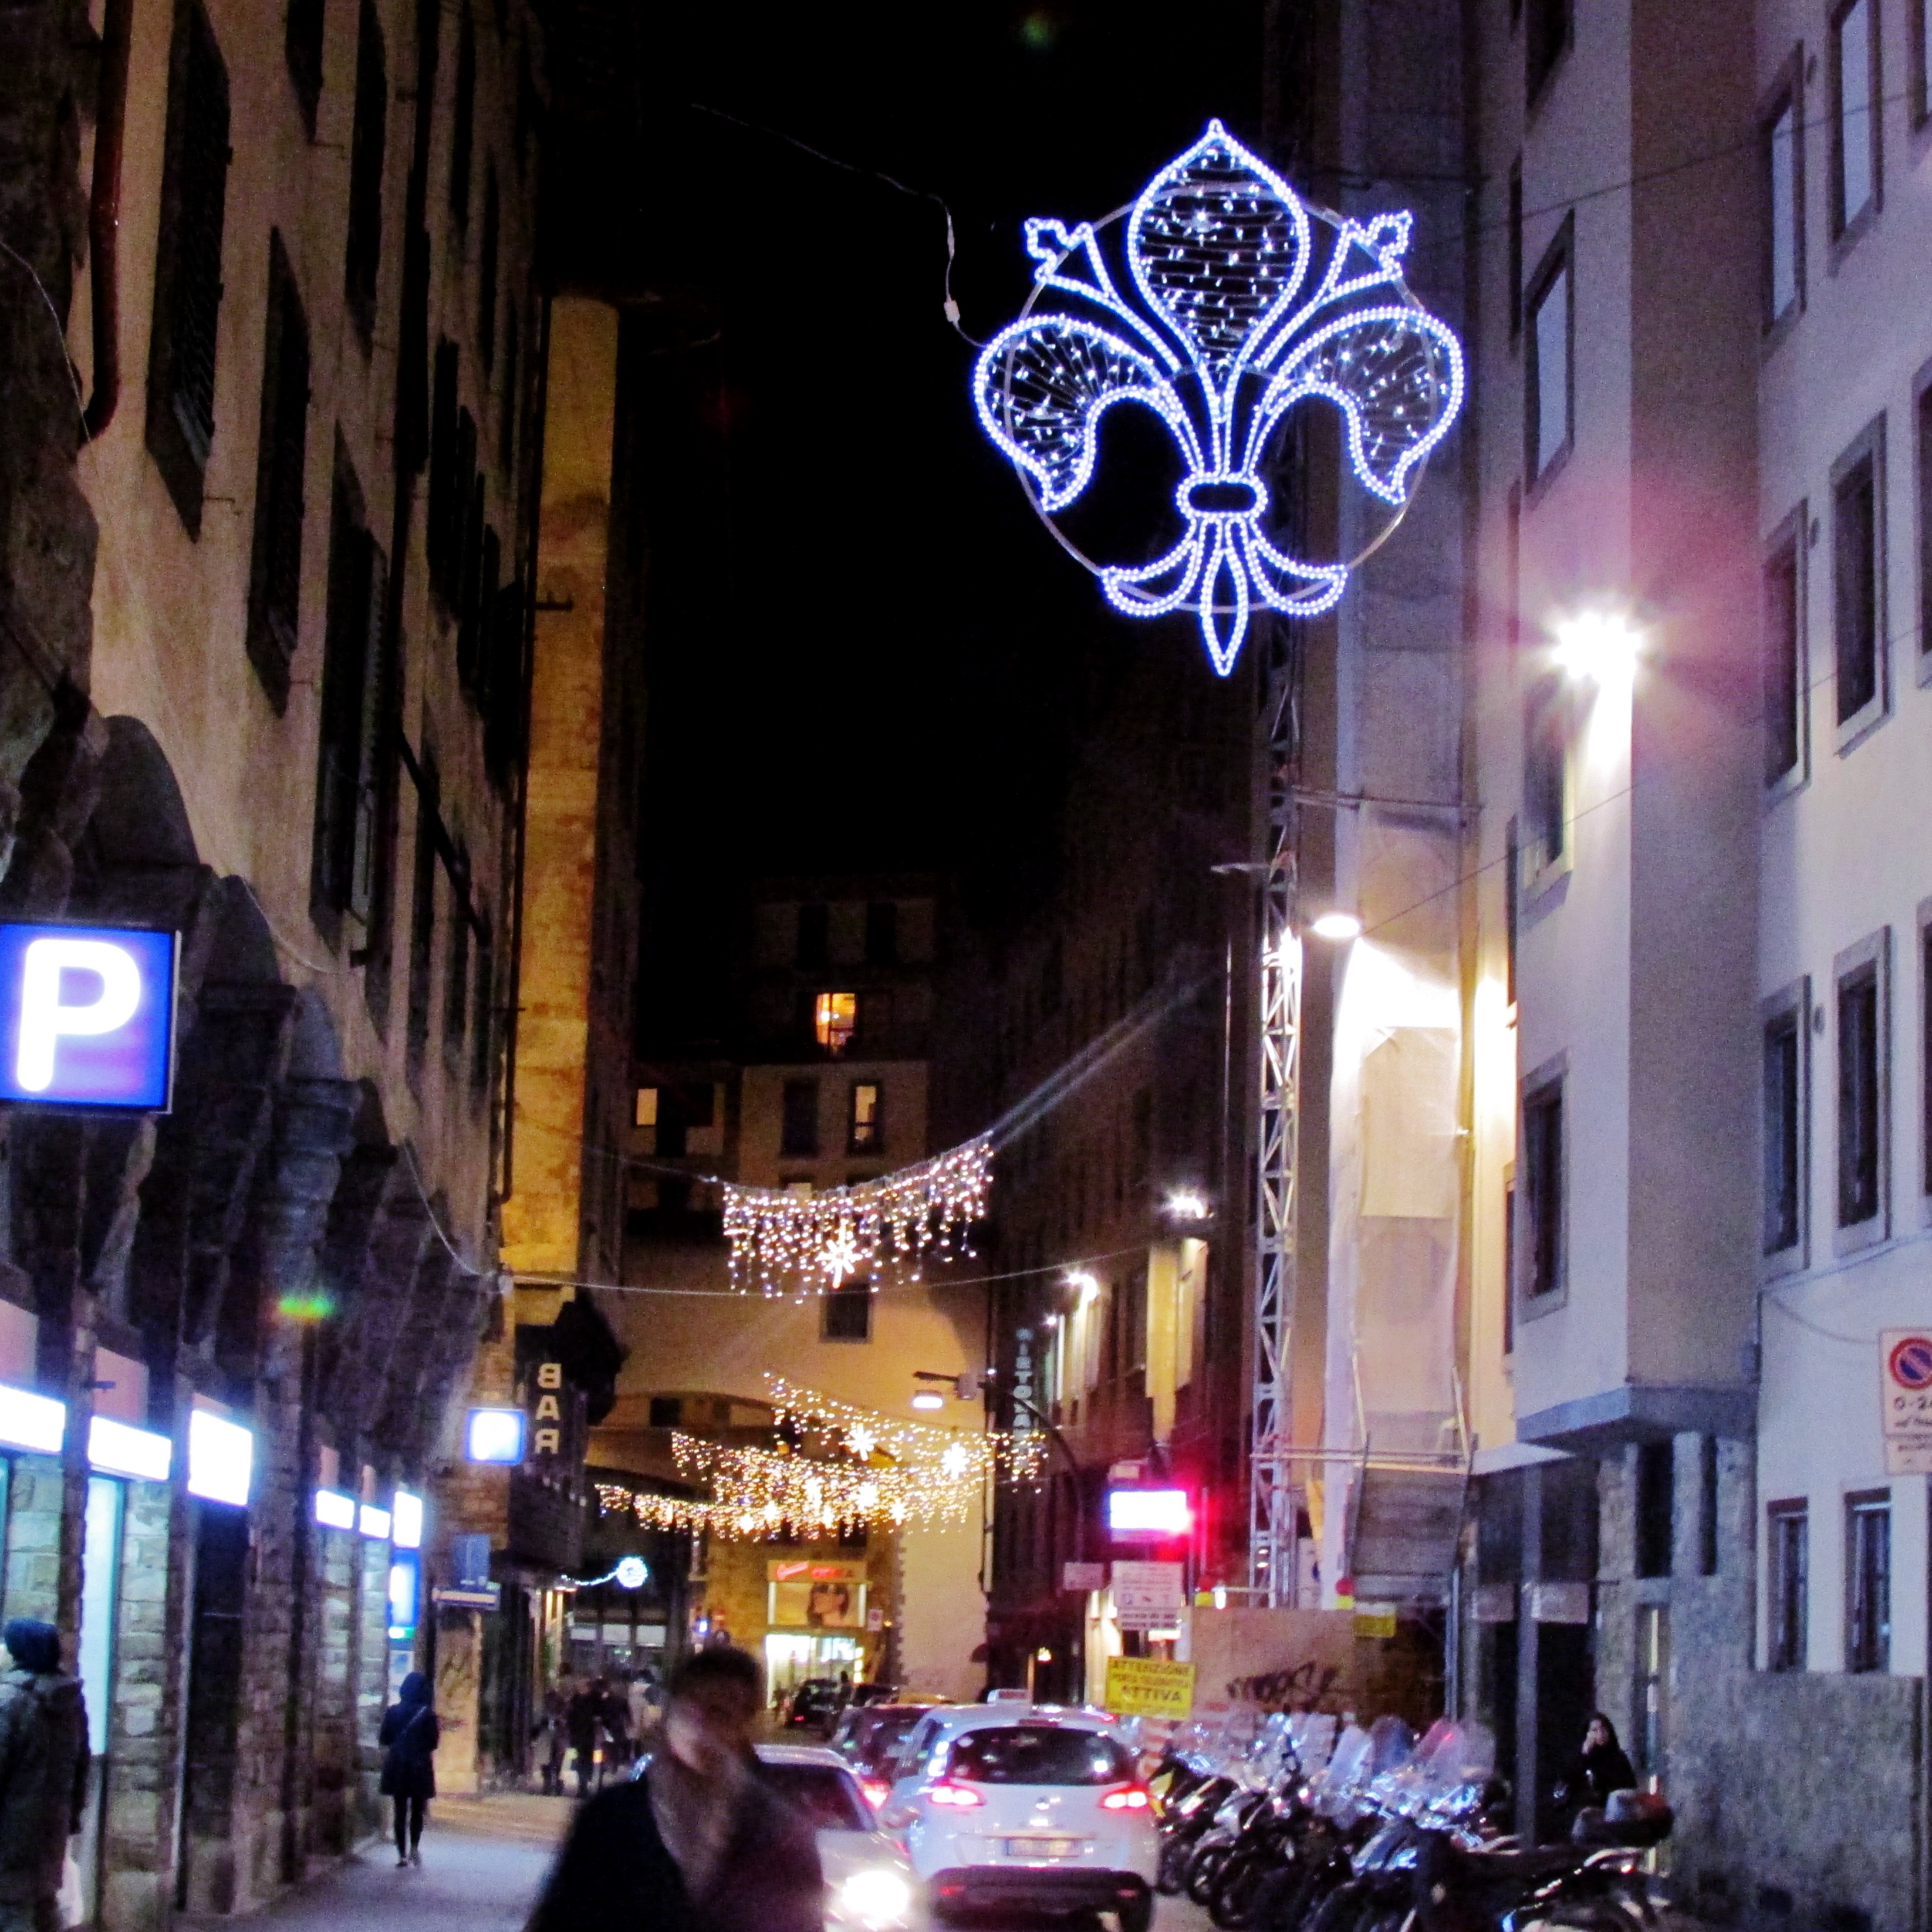 December events in Florence, Italy